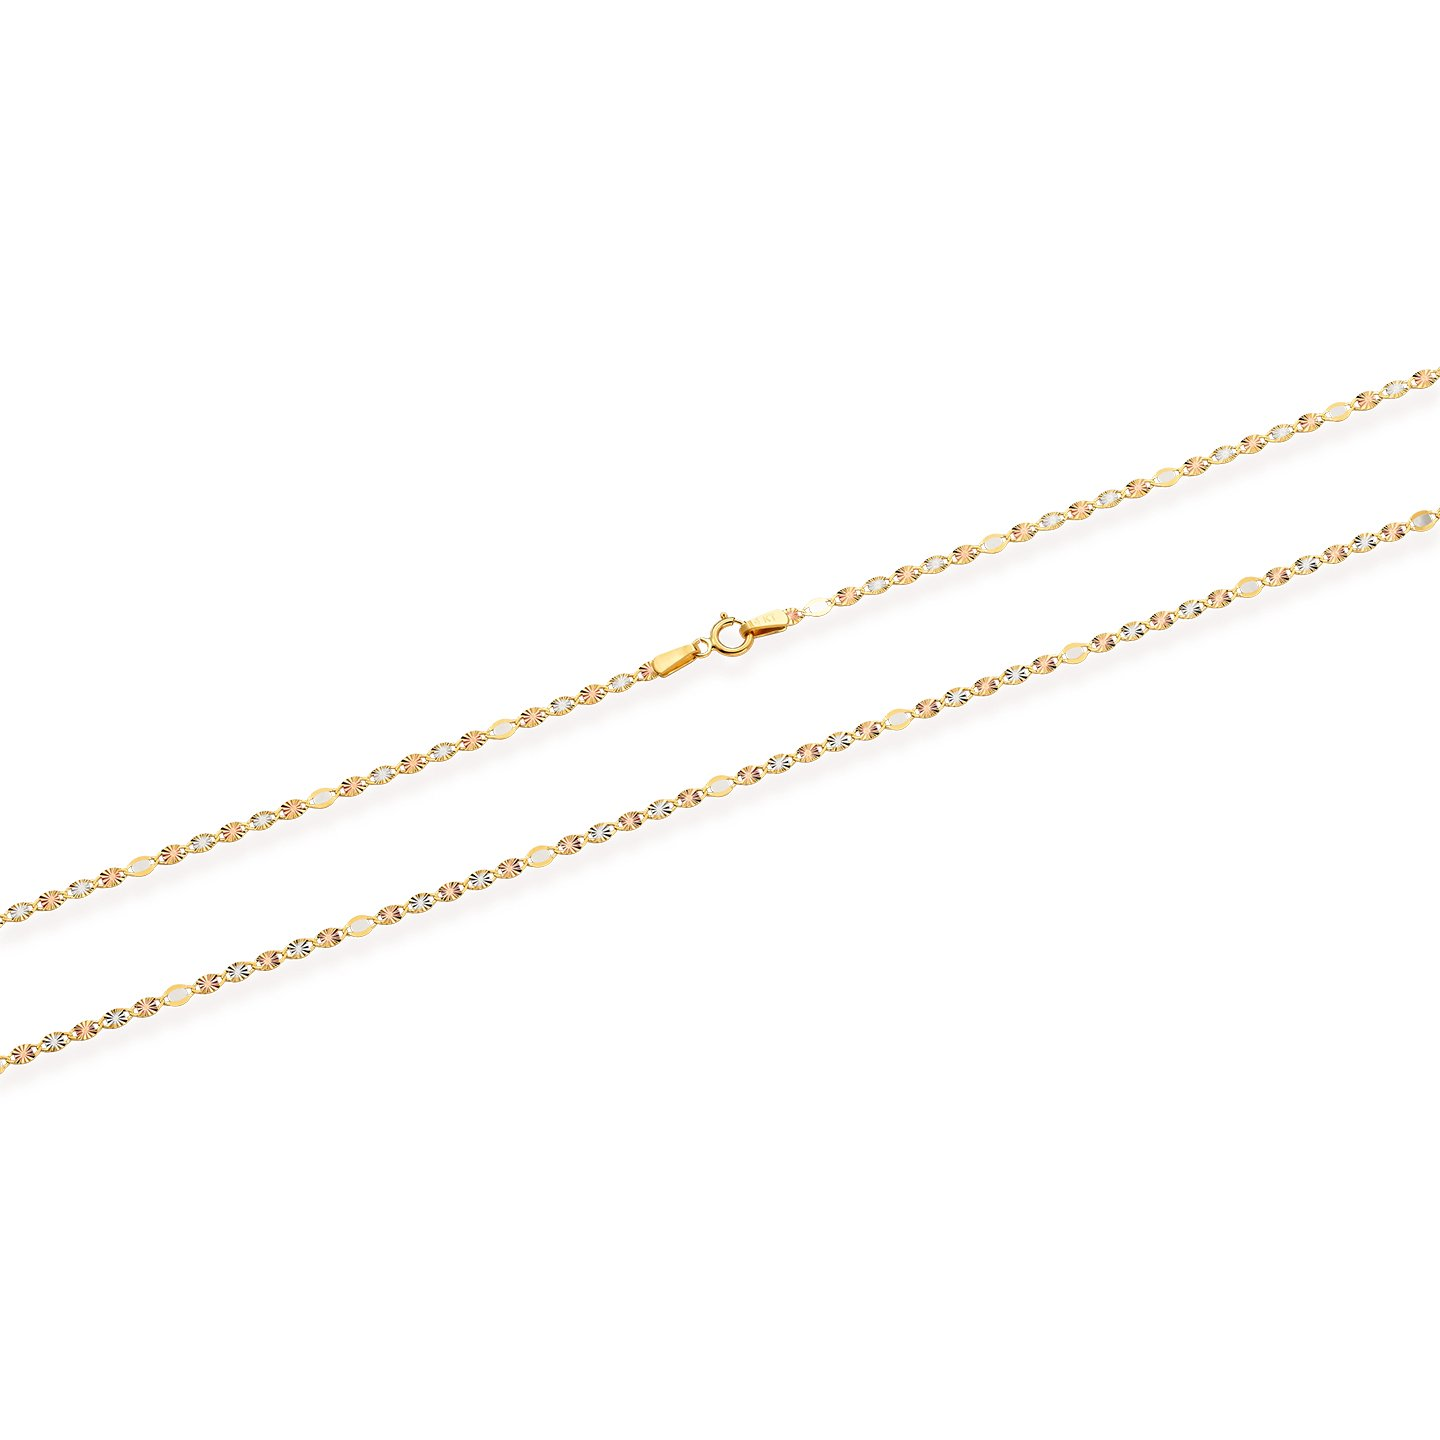 Fancy Tri- Color 14K Valentino Chain, Rose Gold, Yellow Gold, and White Gold (18) by Jewel Connection (Image #3)